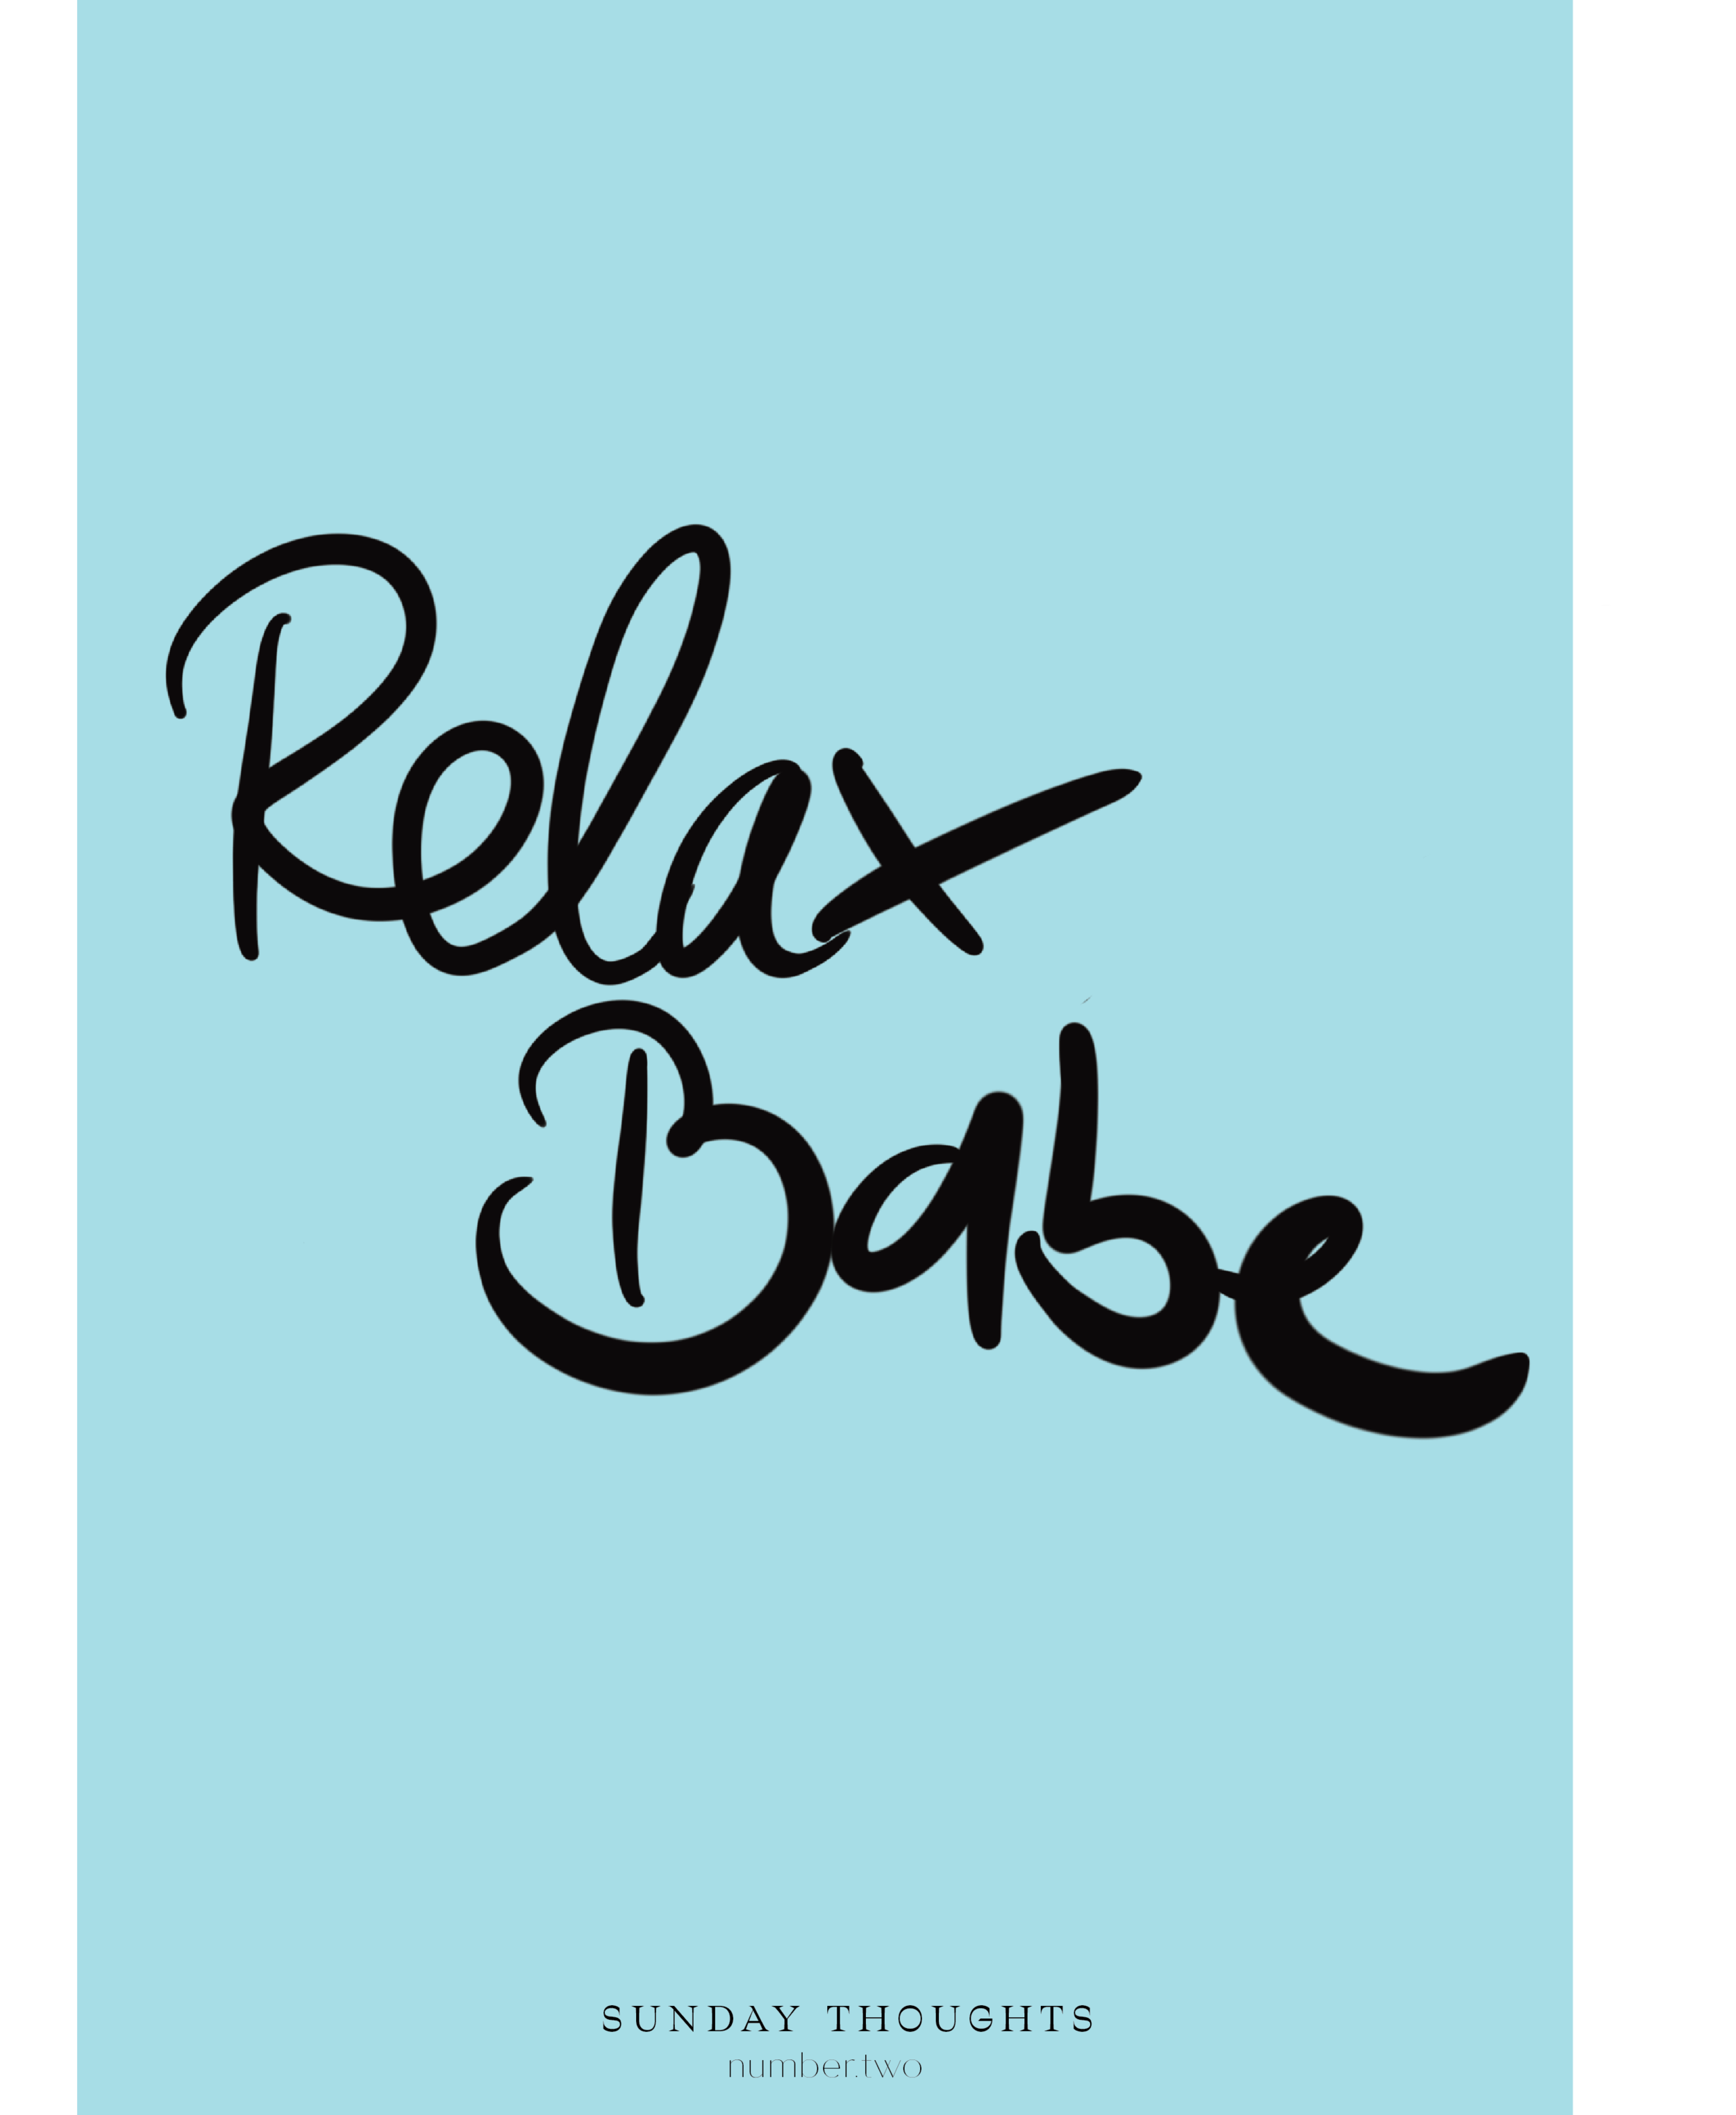 sunday thoughts no.2 // relax babe